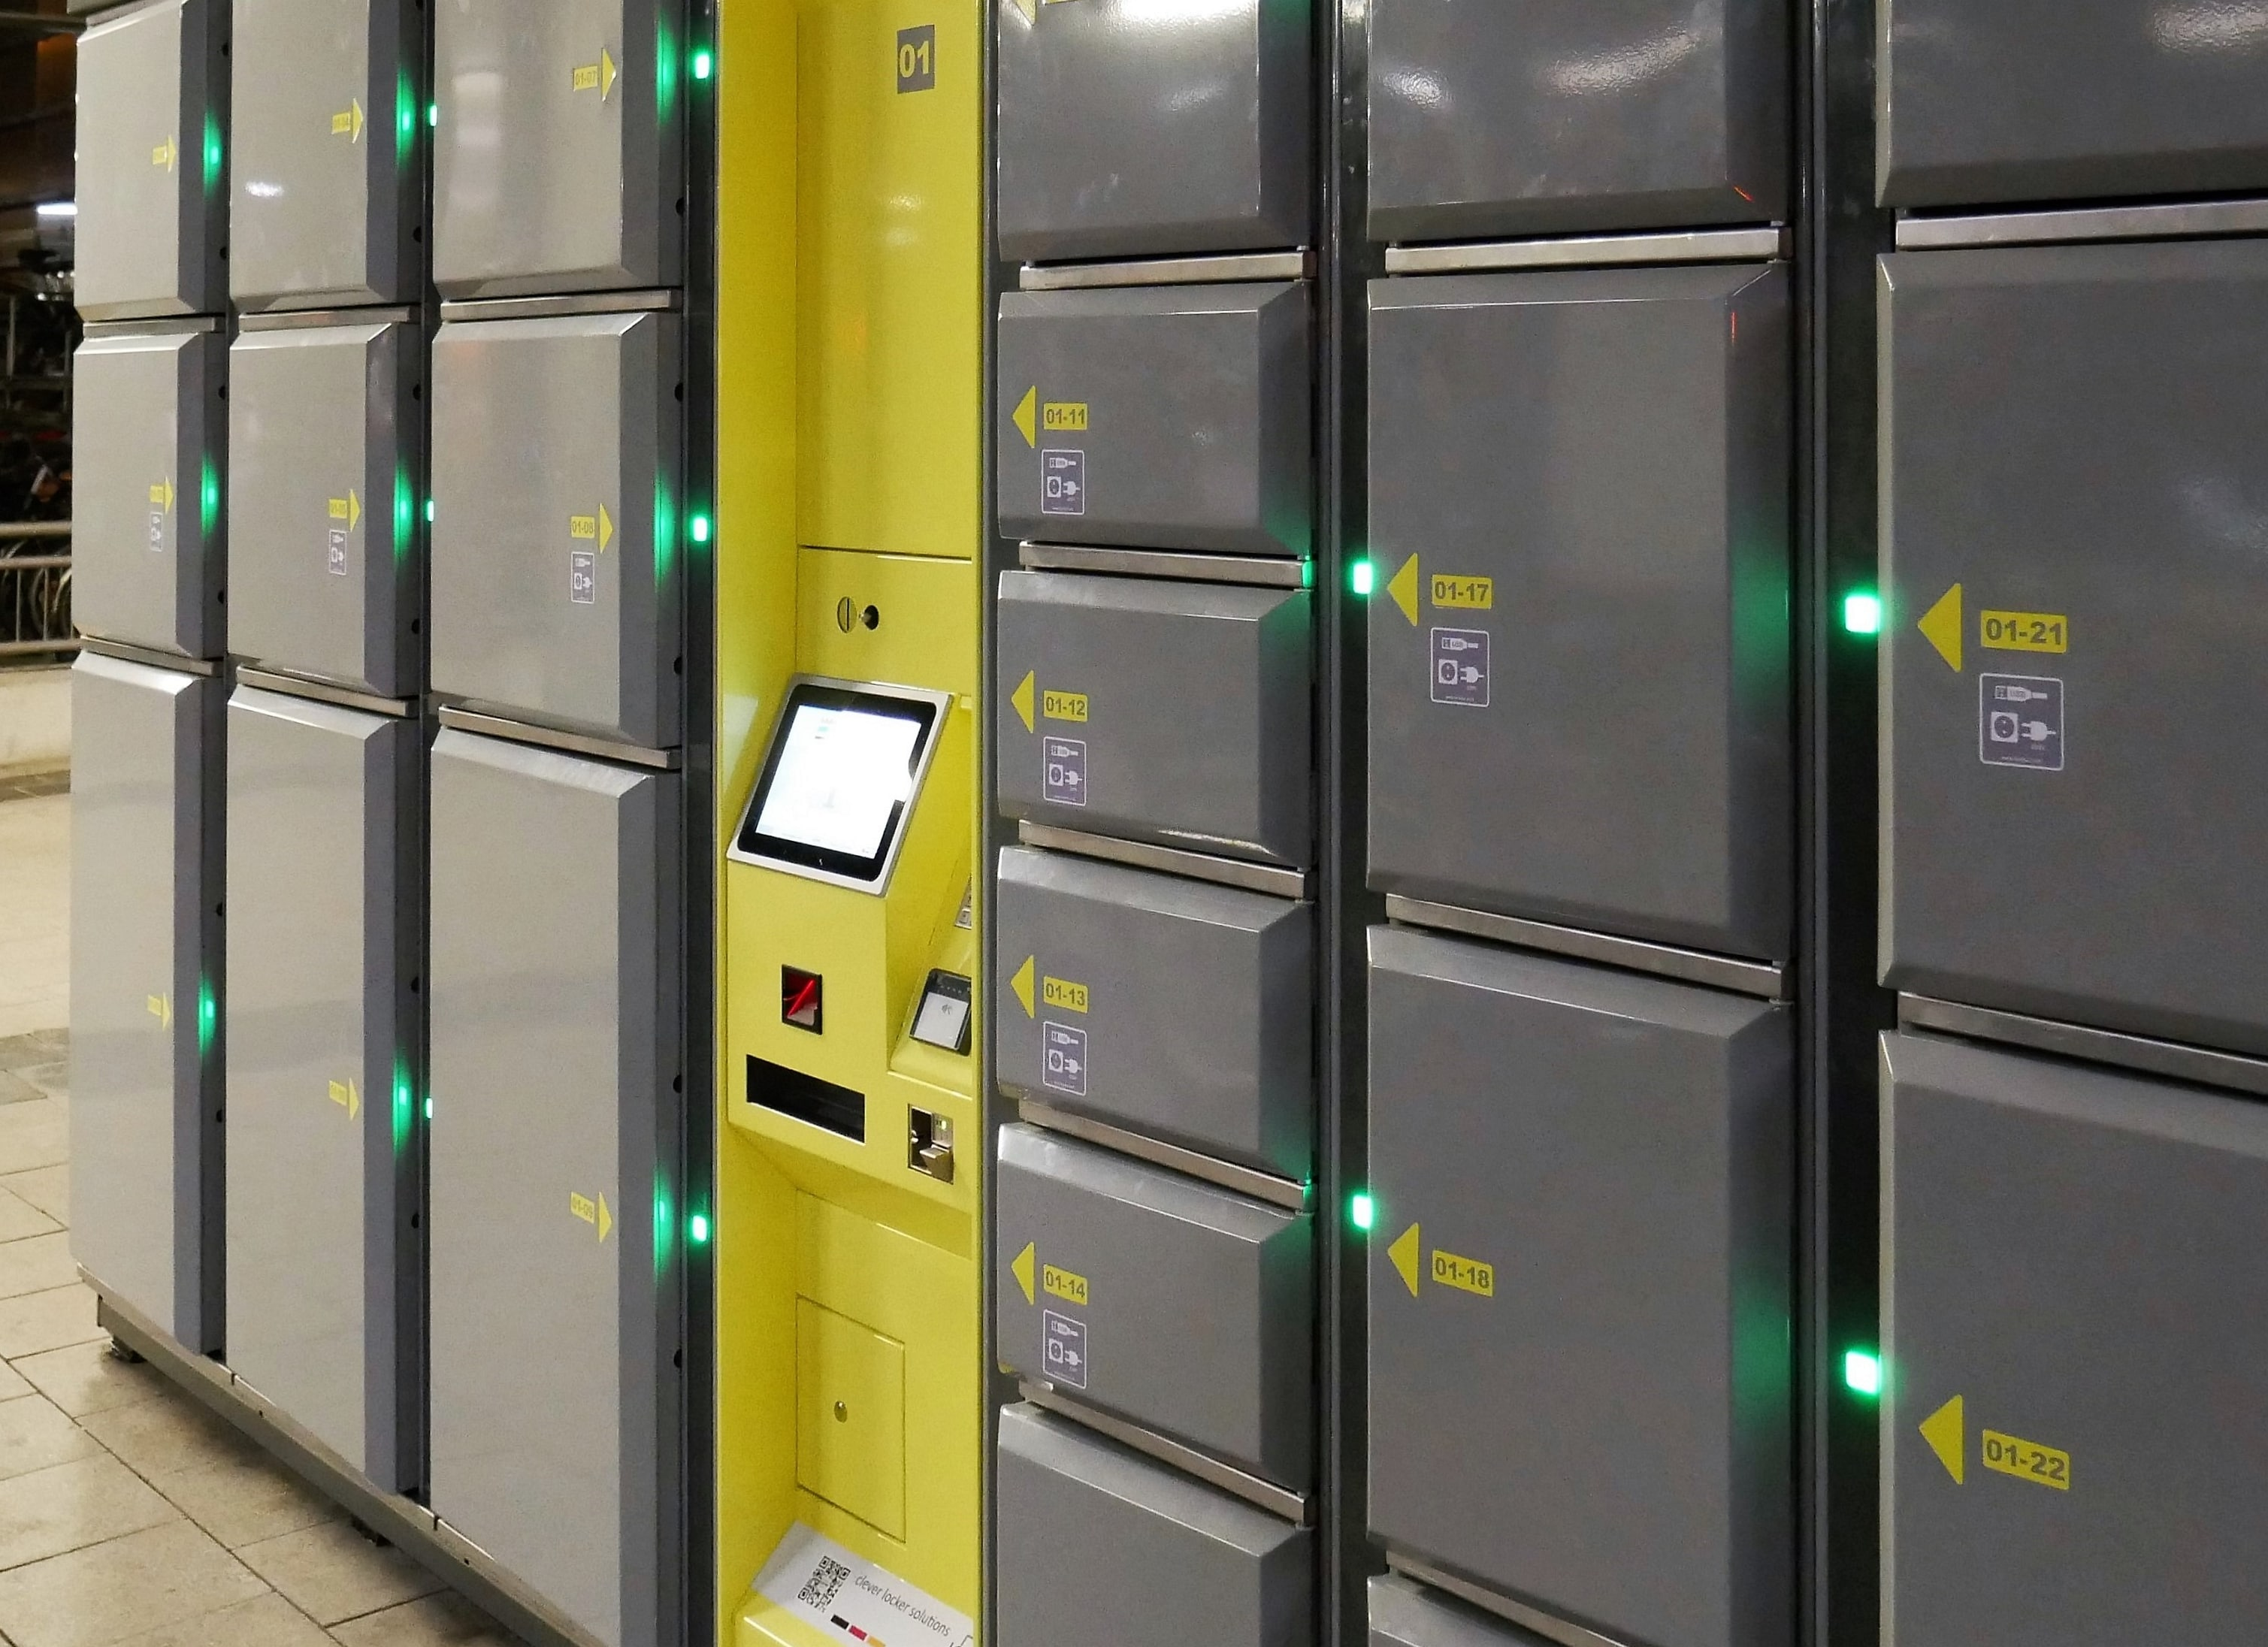 Smart lockers Locksafe5. Keyless locker system indoors for storage of luggage, electronic devices and other equipment.